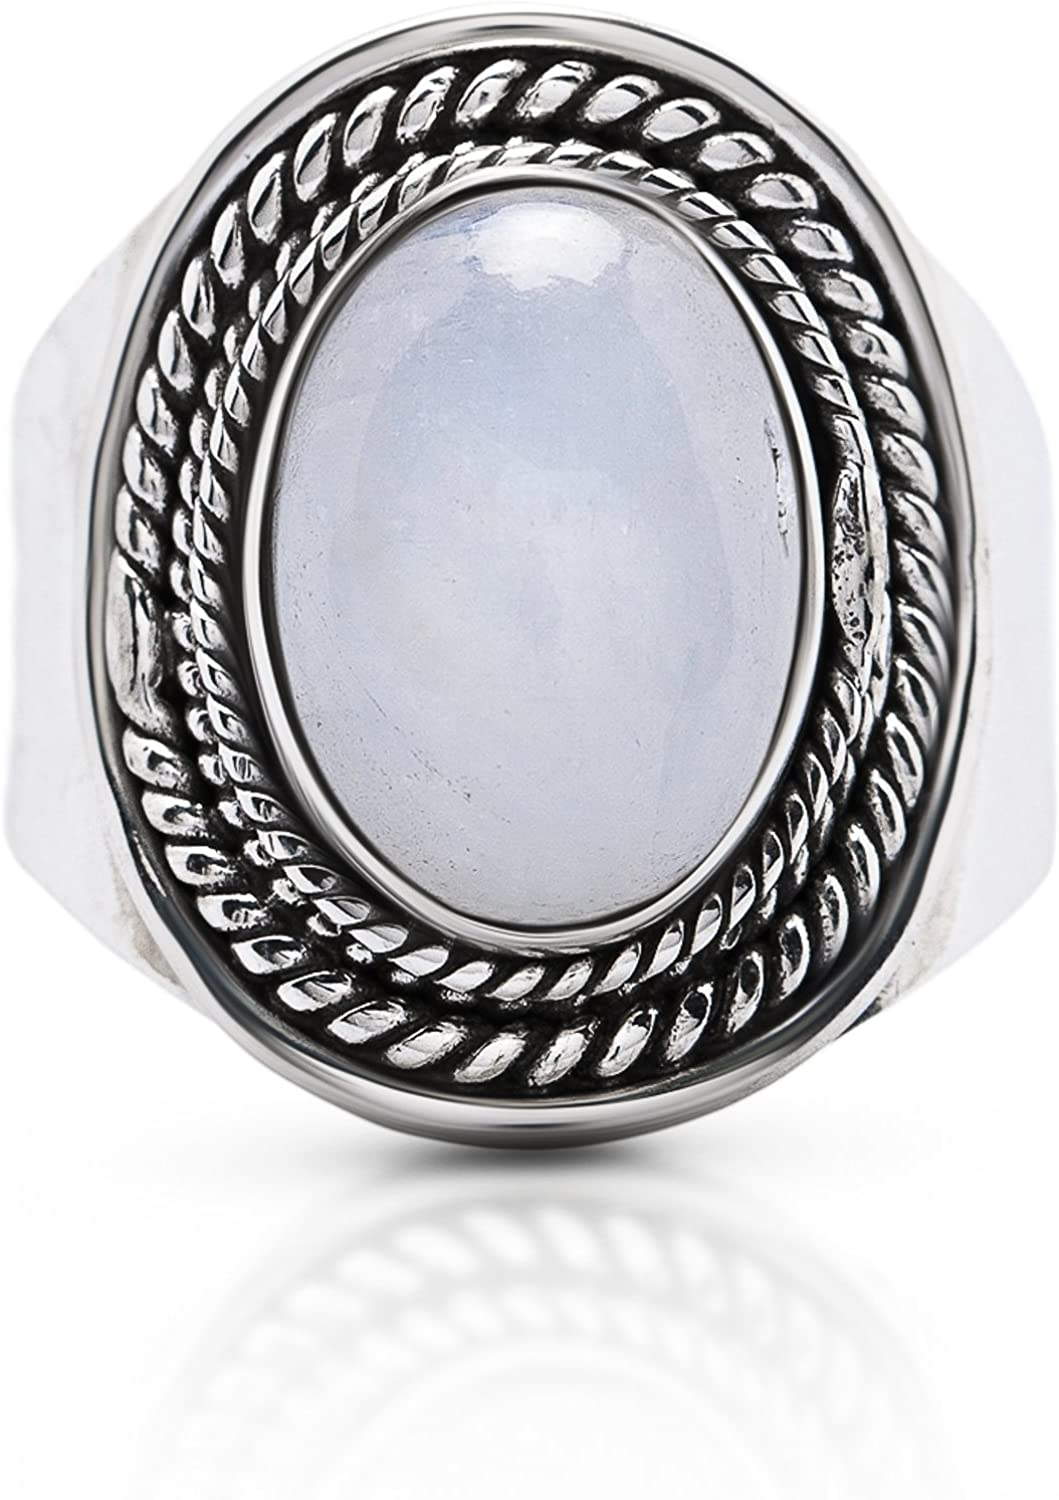 Koral Jewelry Oval Moonstone Gipsy Vintage Ring 925 Sterling Silver US Size 7 8 9 10